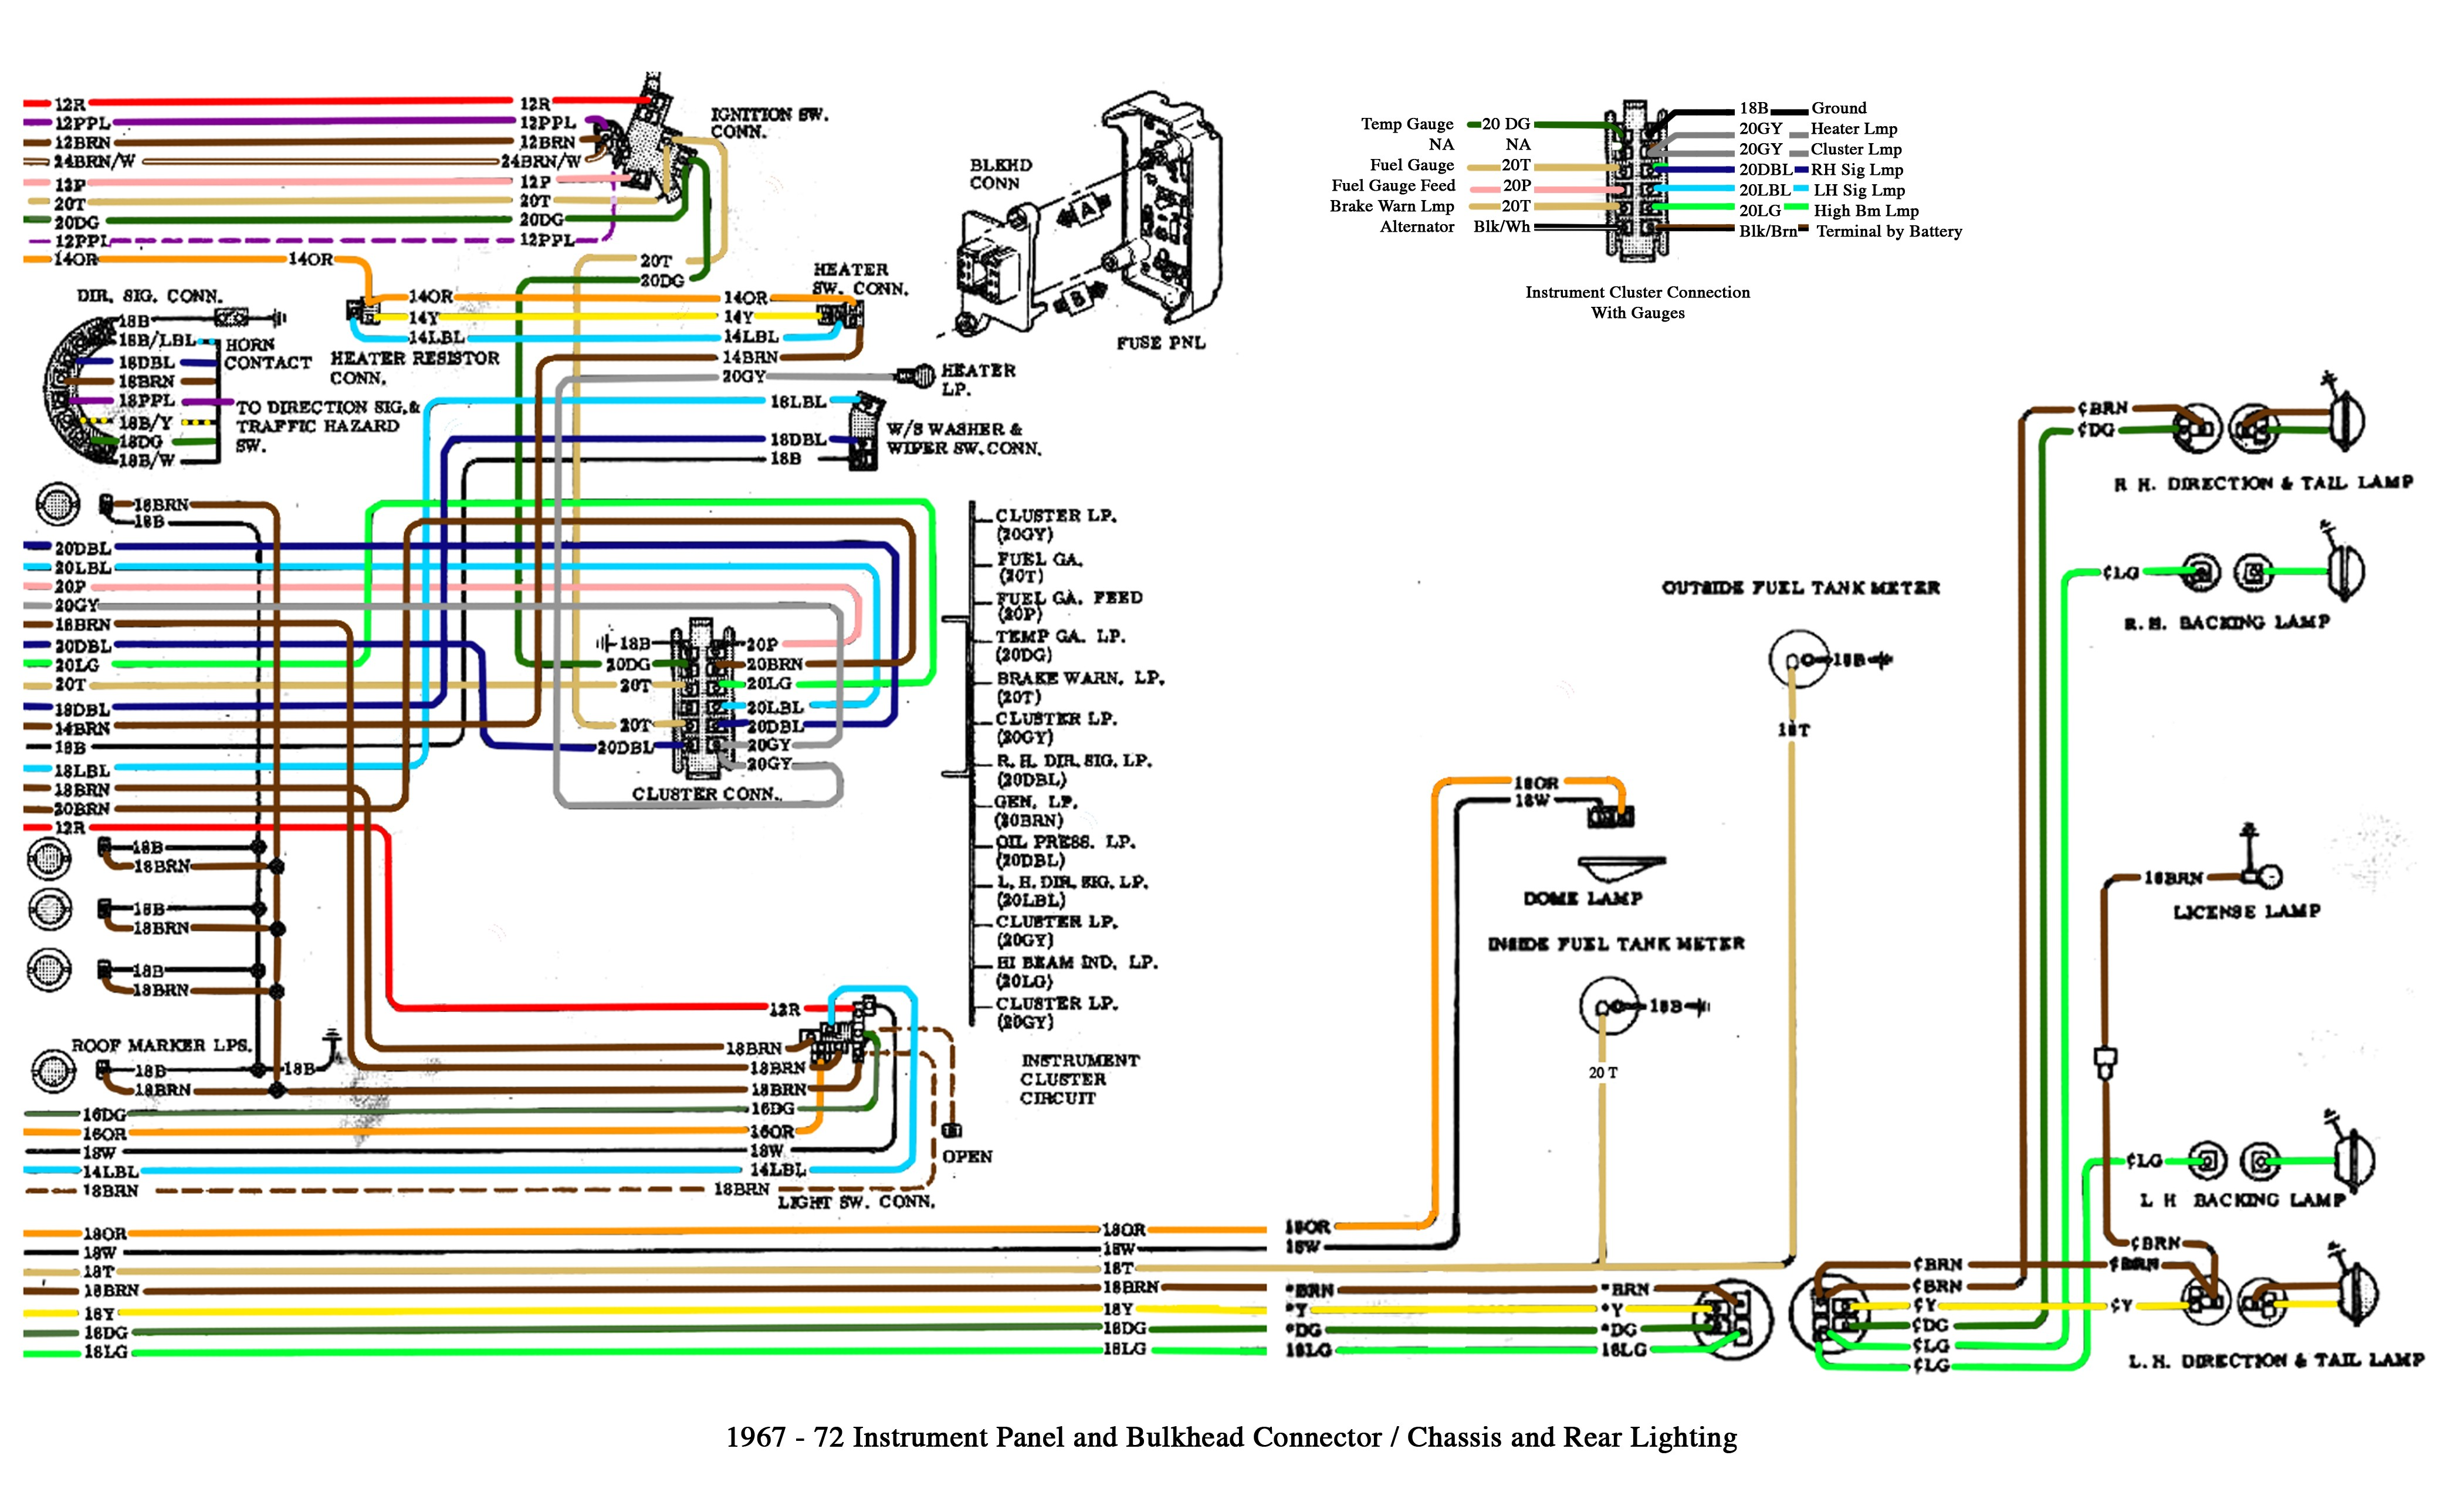 1998 Chevy S10 2 Engine Diagram Need Wiring Diagran For Starter 2000 2004mazda6wiringdiagram 2004 Mazda 6 Http Wwwmx6 Of